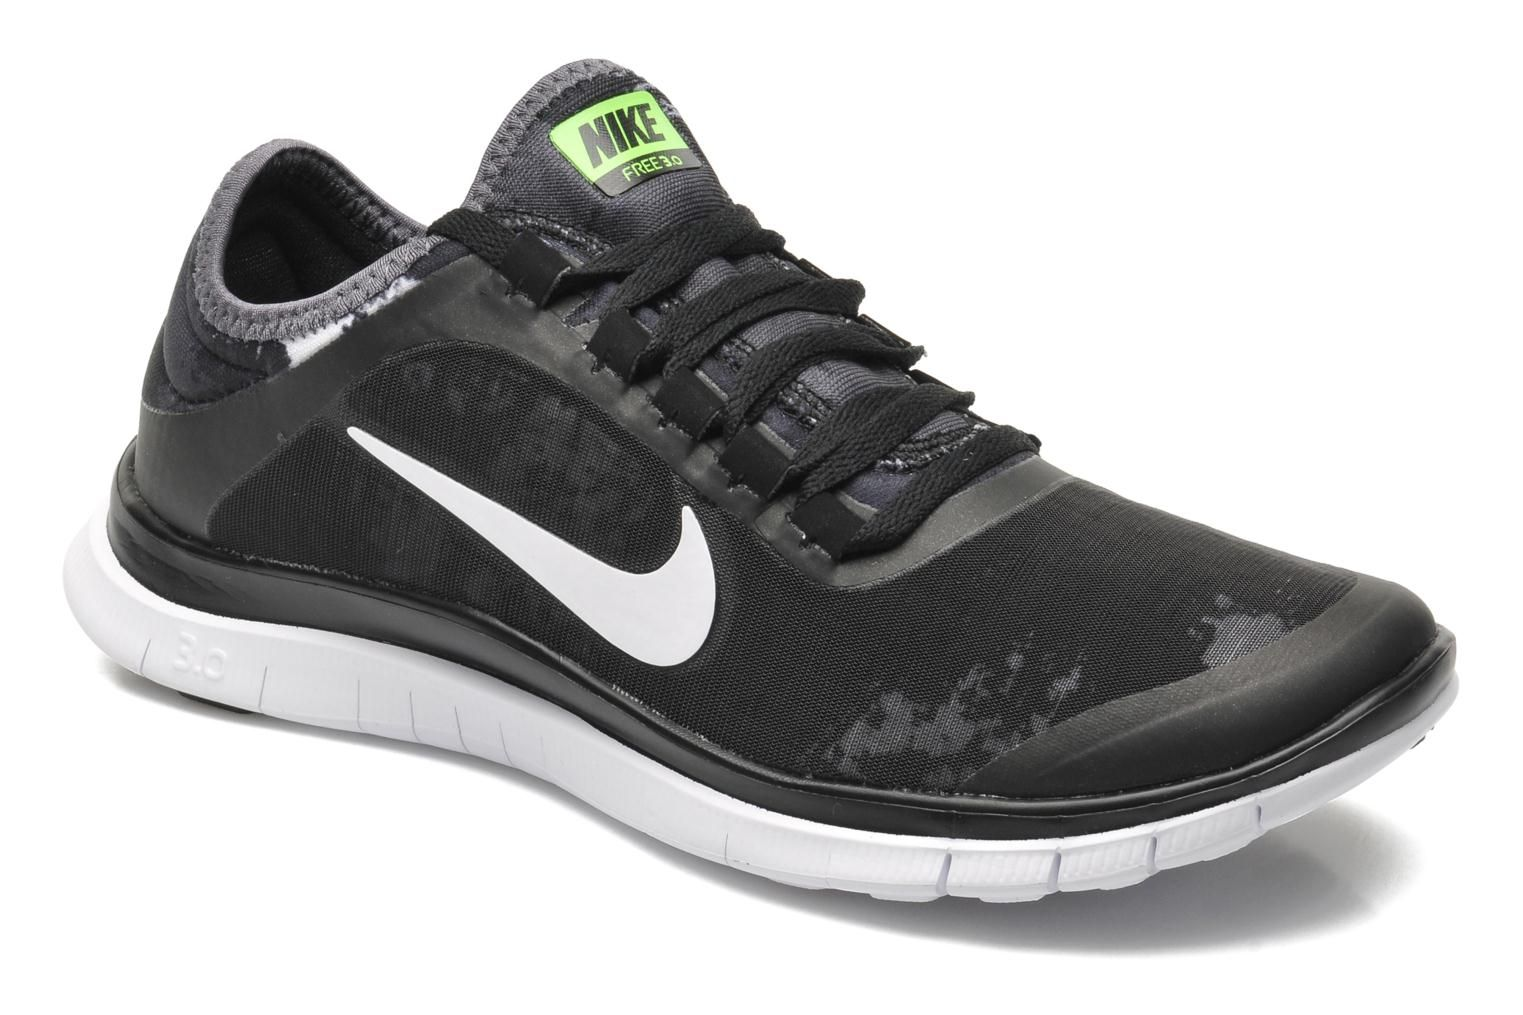 official photos 06d3d 56015 ... ireland wmns nike free 3.0 v5 ext prnt by nike. c81af f0d91